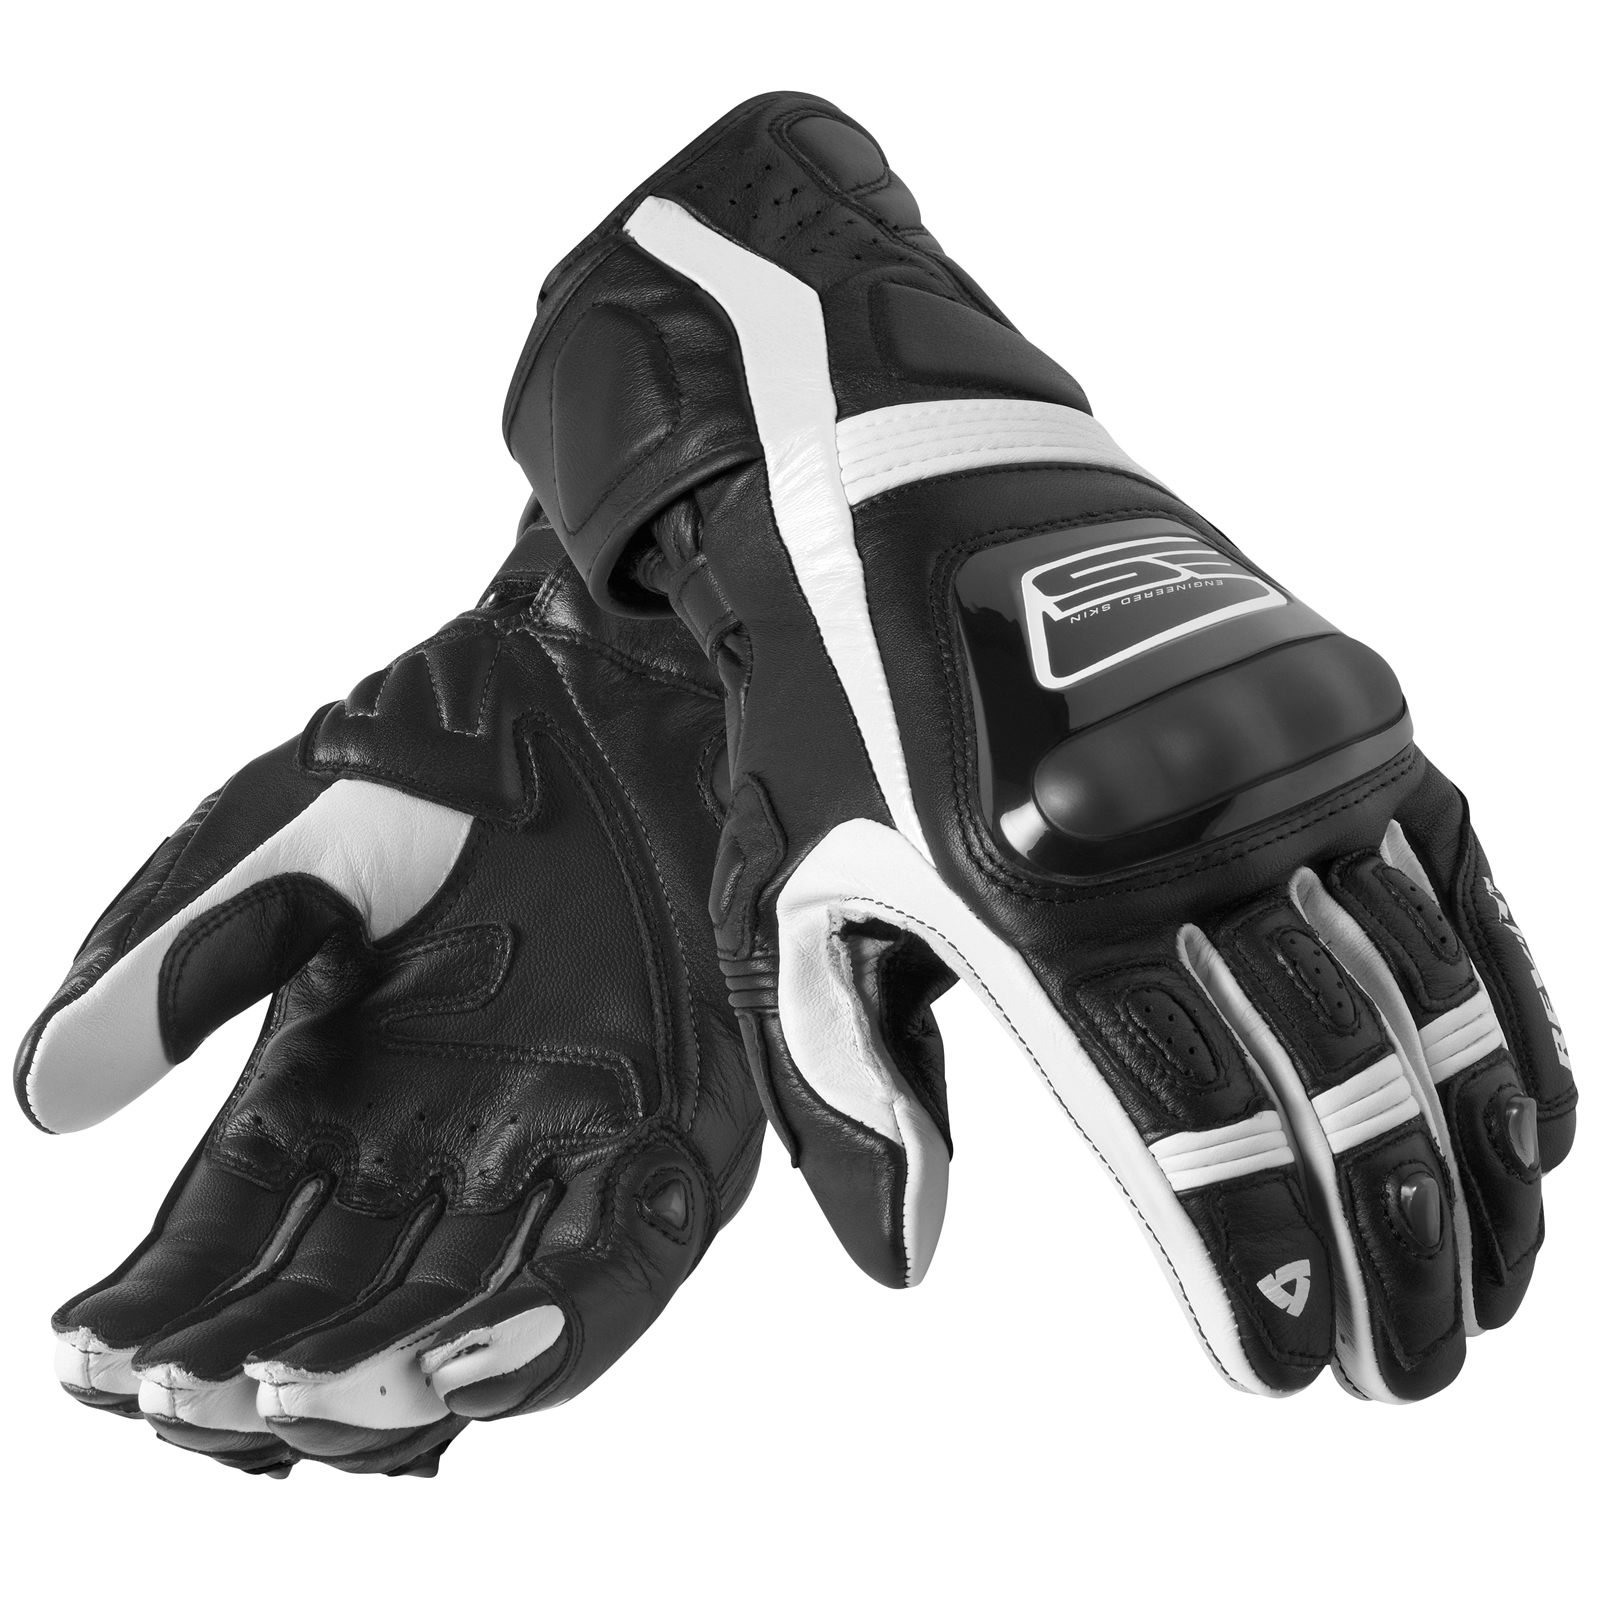 Motorcycle gloves for summer - Revit Stellar Motorcycle Sports Racing Street Armoured Vented